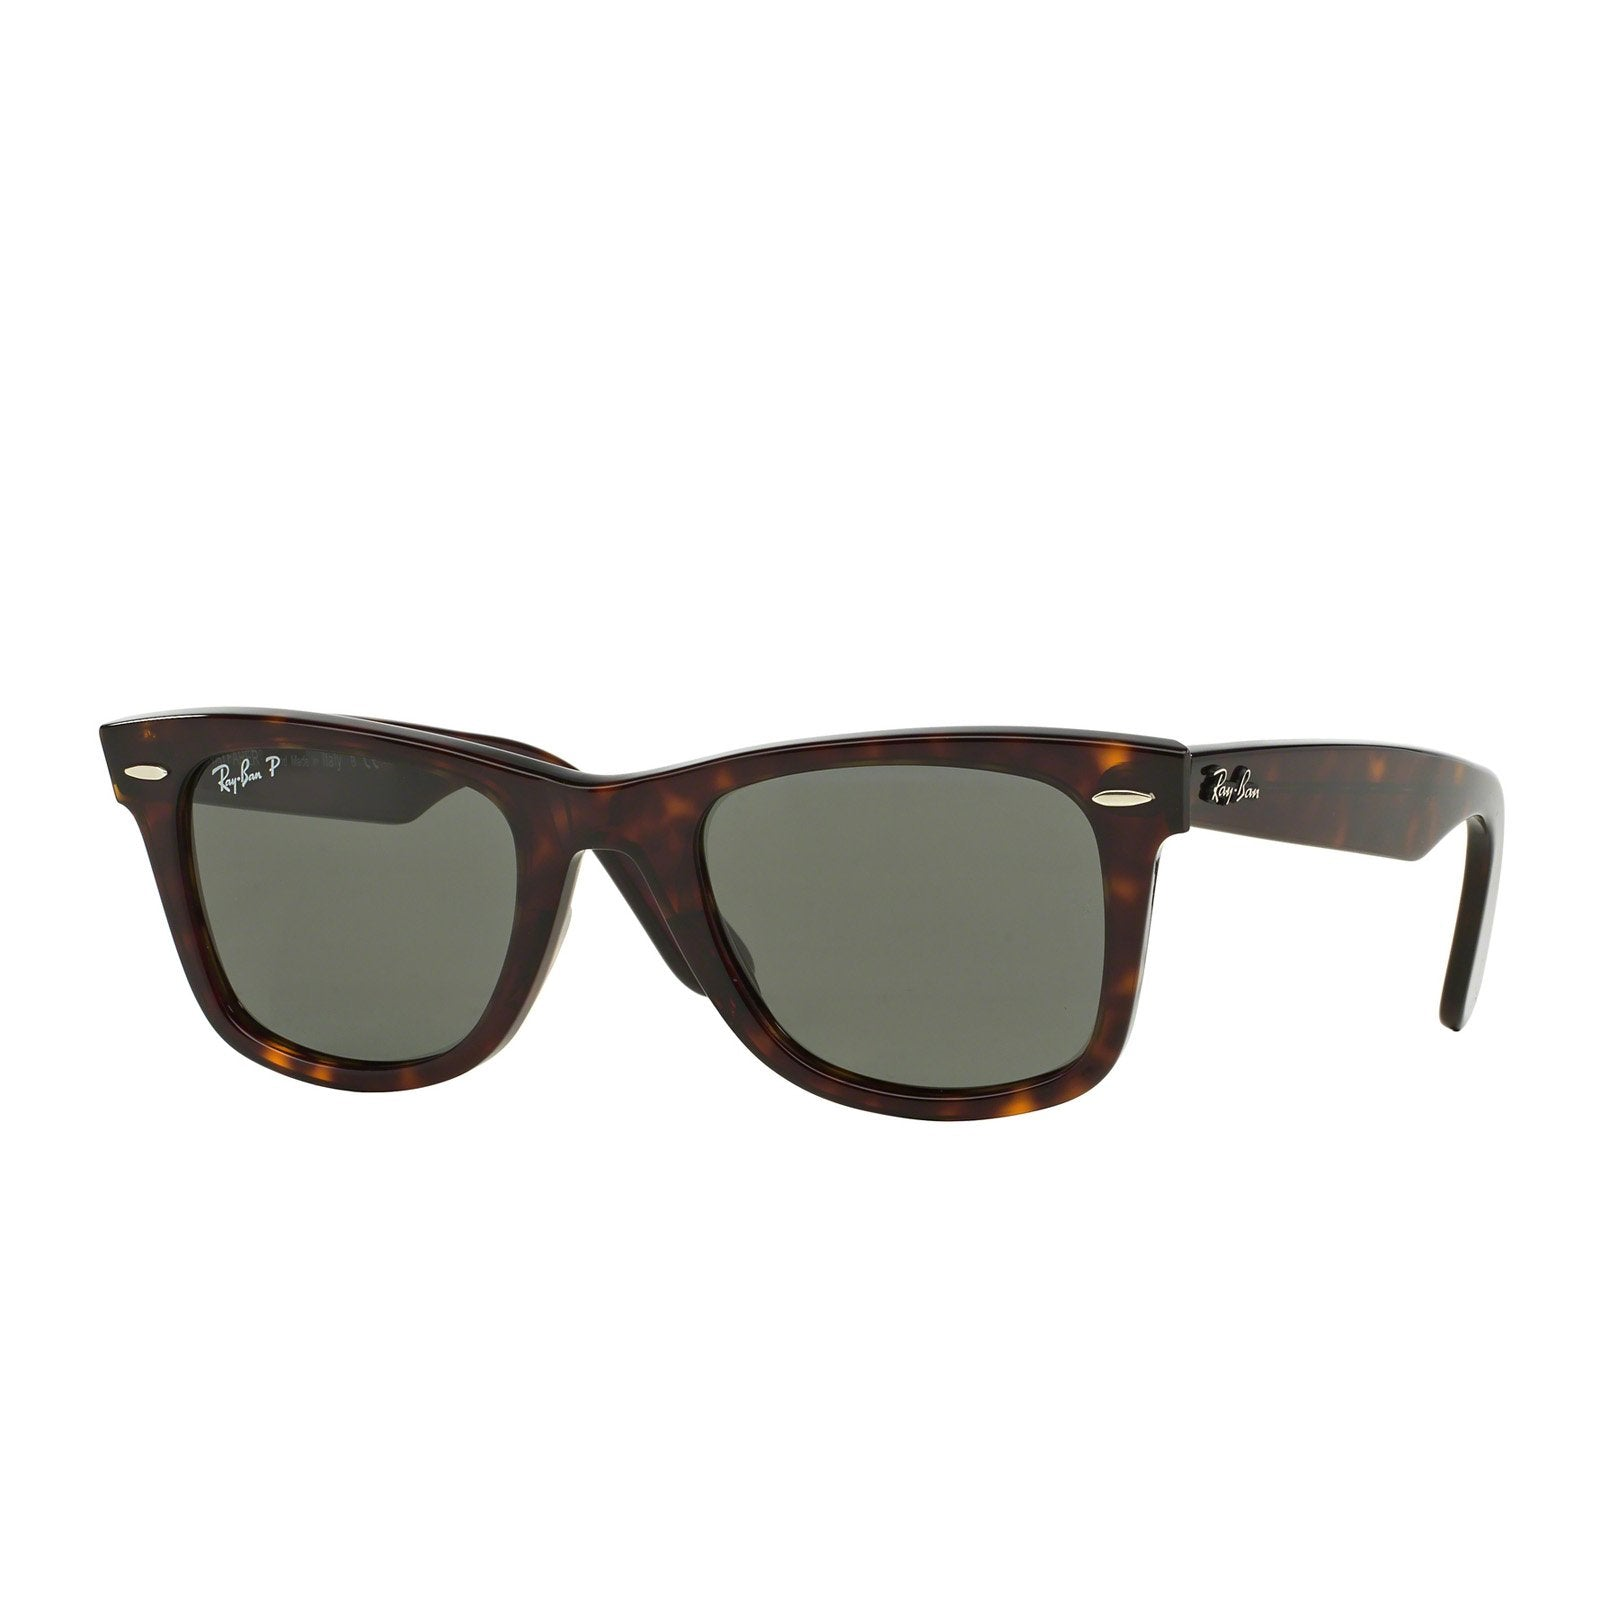 Ray-Ban RB2140 902/58 Sunglasses